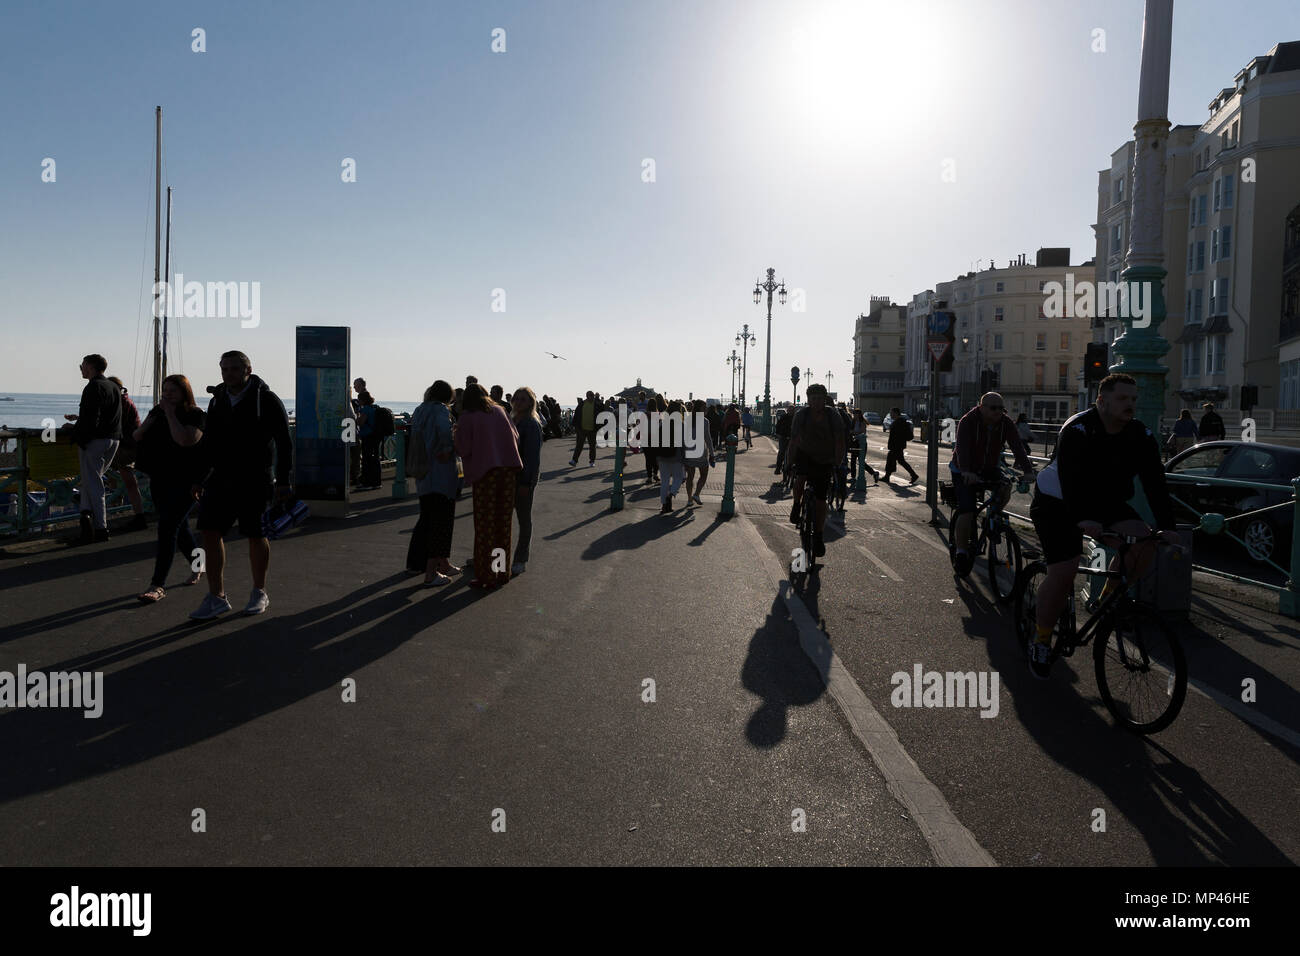 Shadowy pedestrians and cyclists on a busy path on Brighton seafront. Brighton, East Sussex, UK. - Stock Image